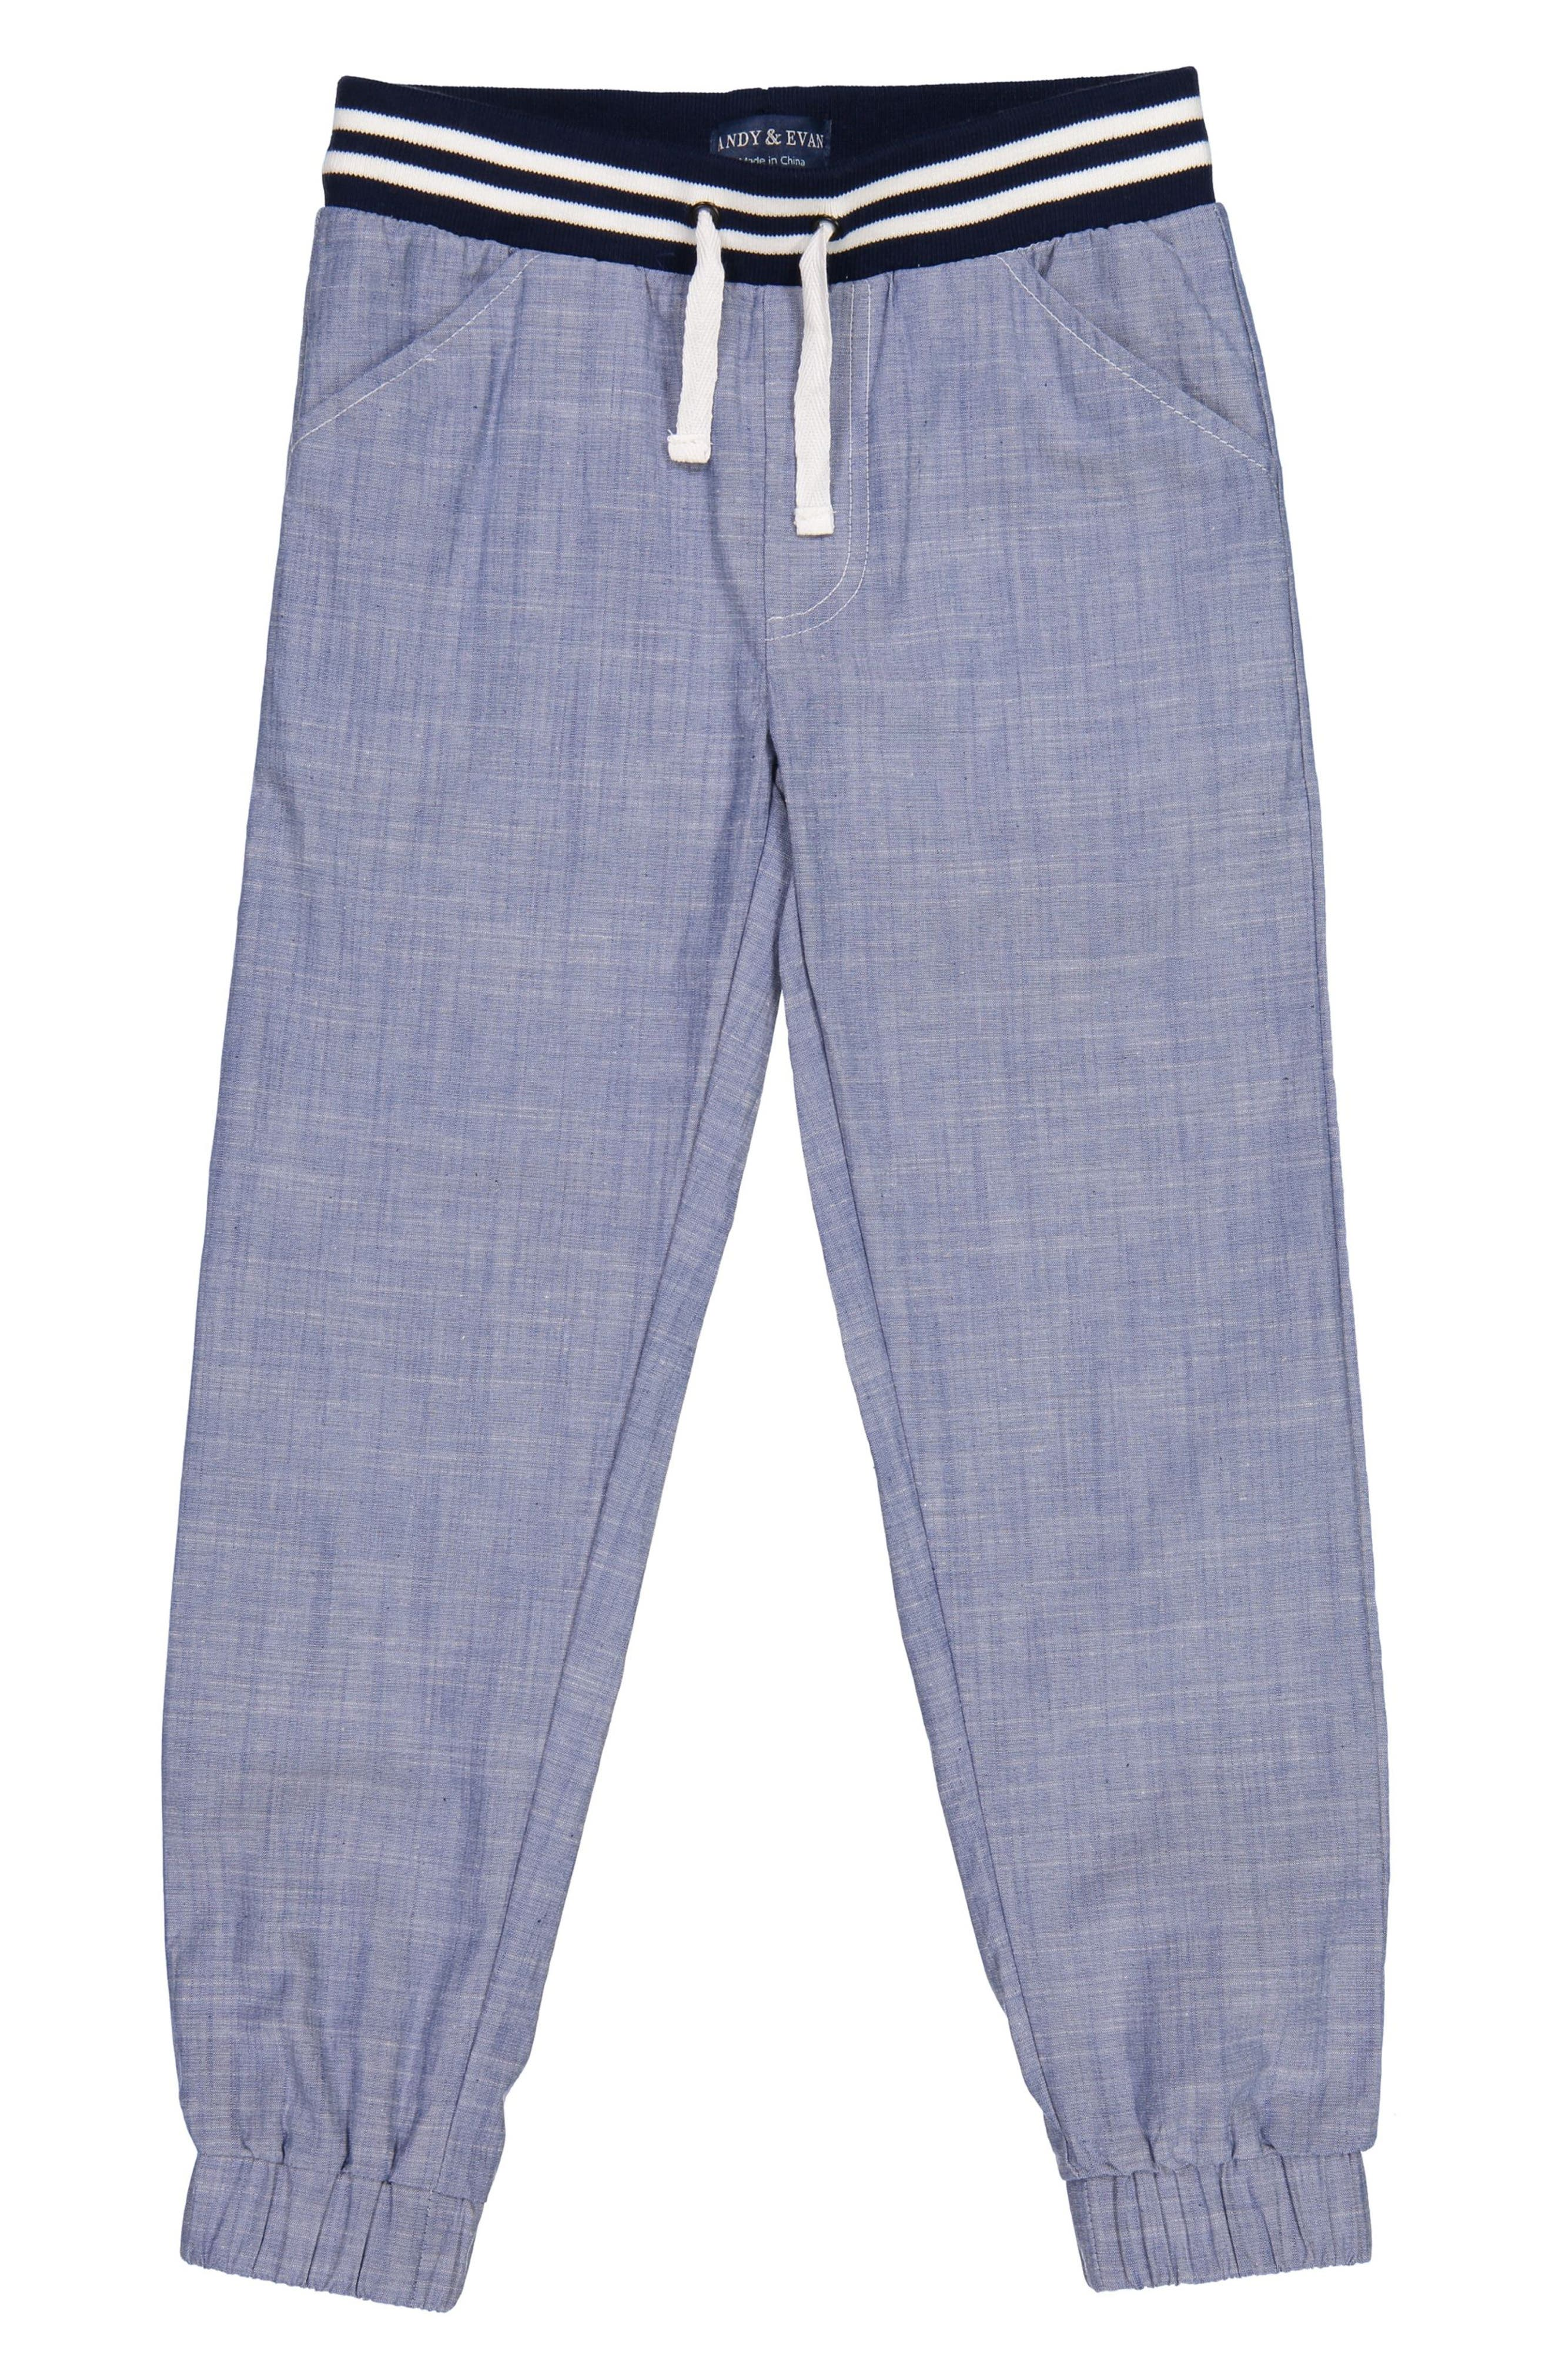 Andy & Evan Chambray Jogger Pants (Toddler Boys & Little Boys)